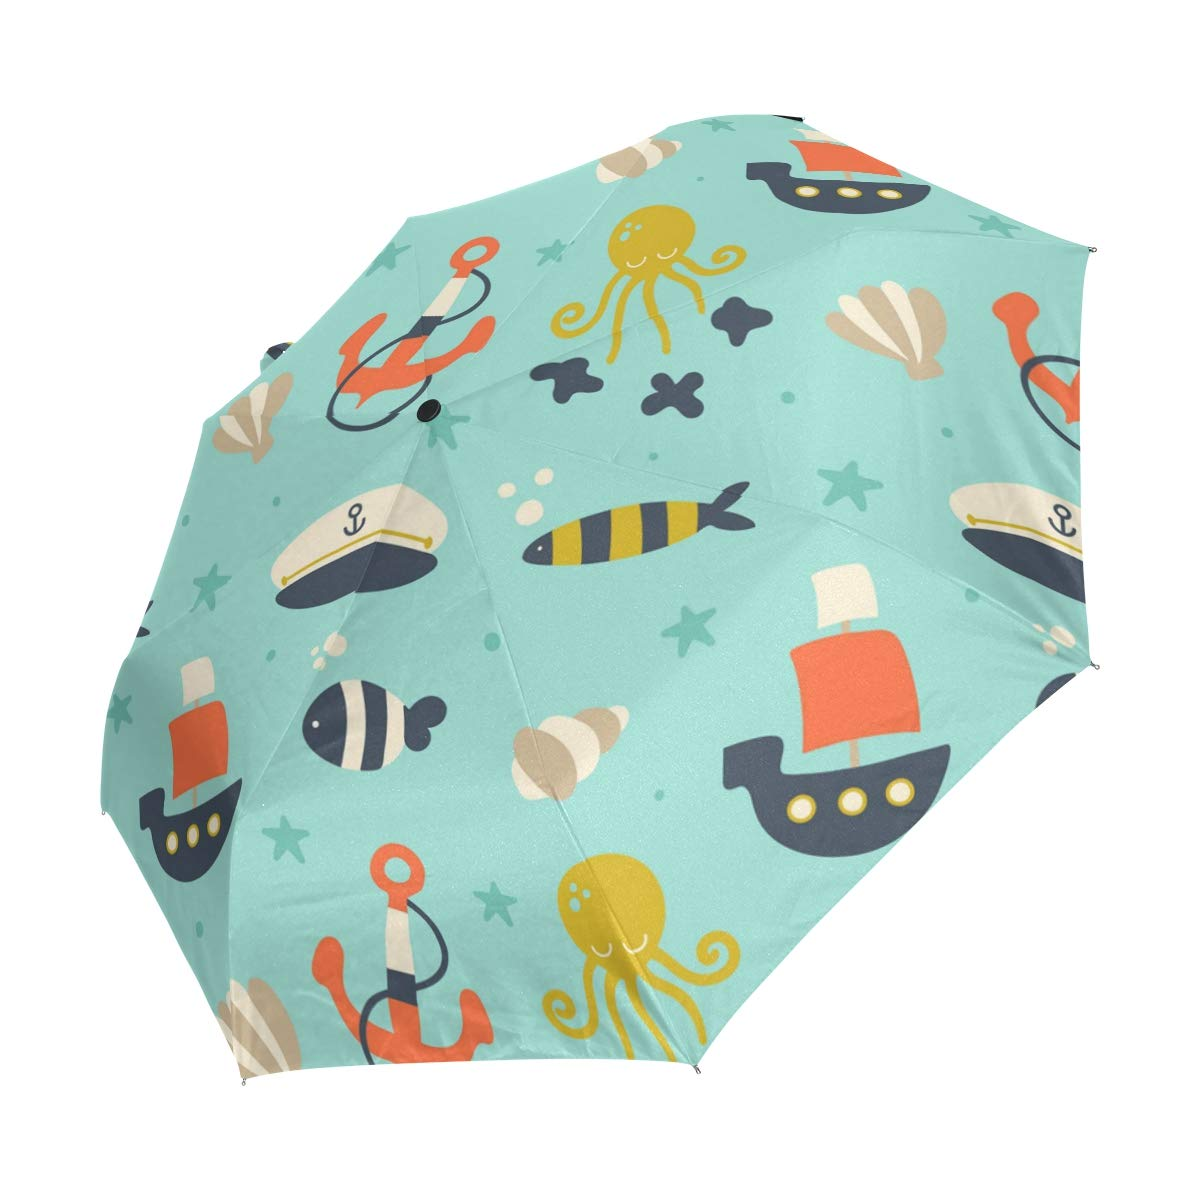 82dafcbf6de0 Amazon.com: imobaby Octopus Anchor Indestructible Windproof Umbrella ...